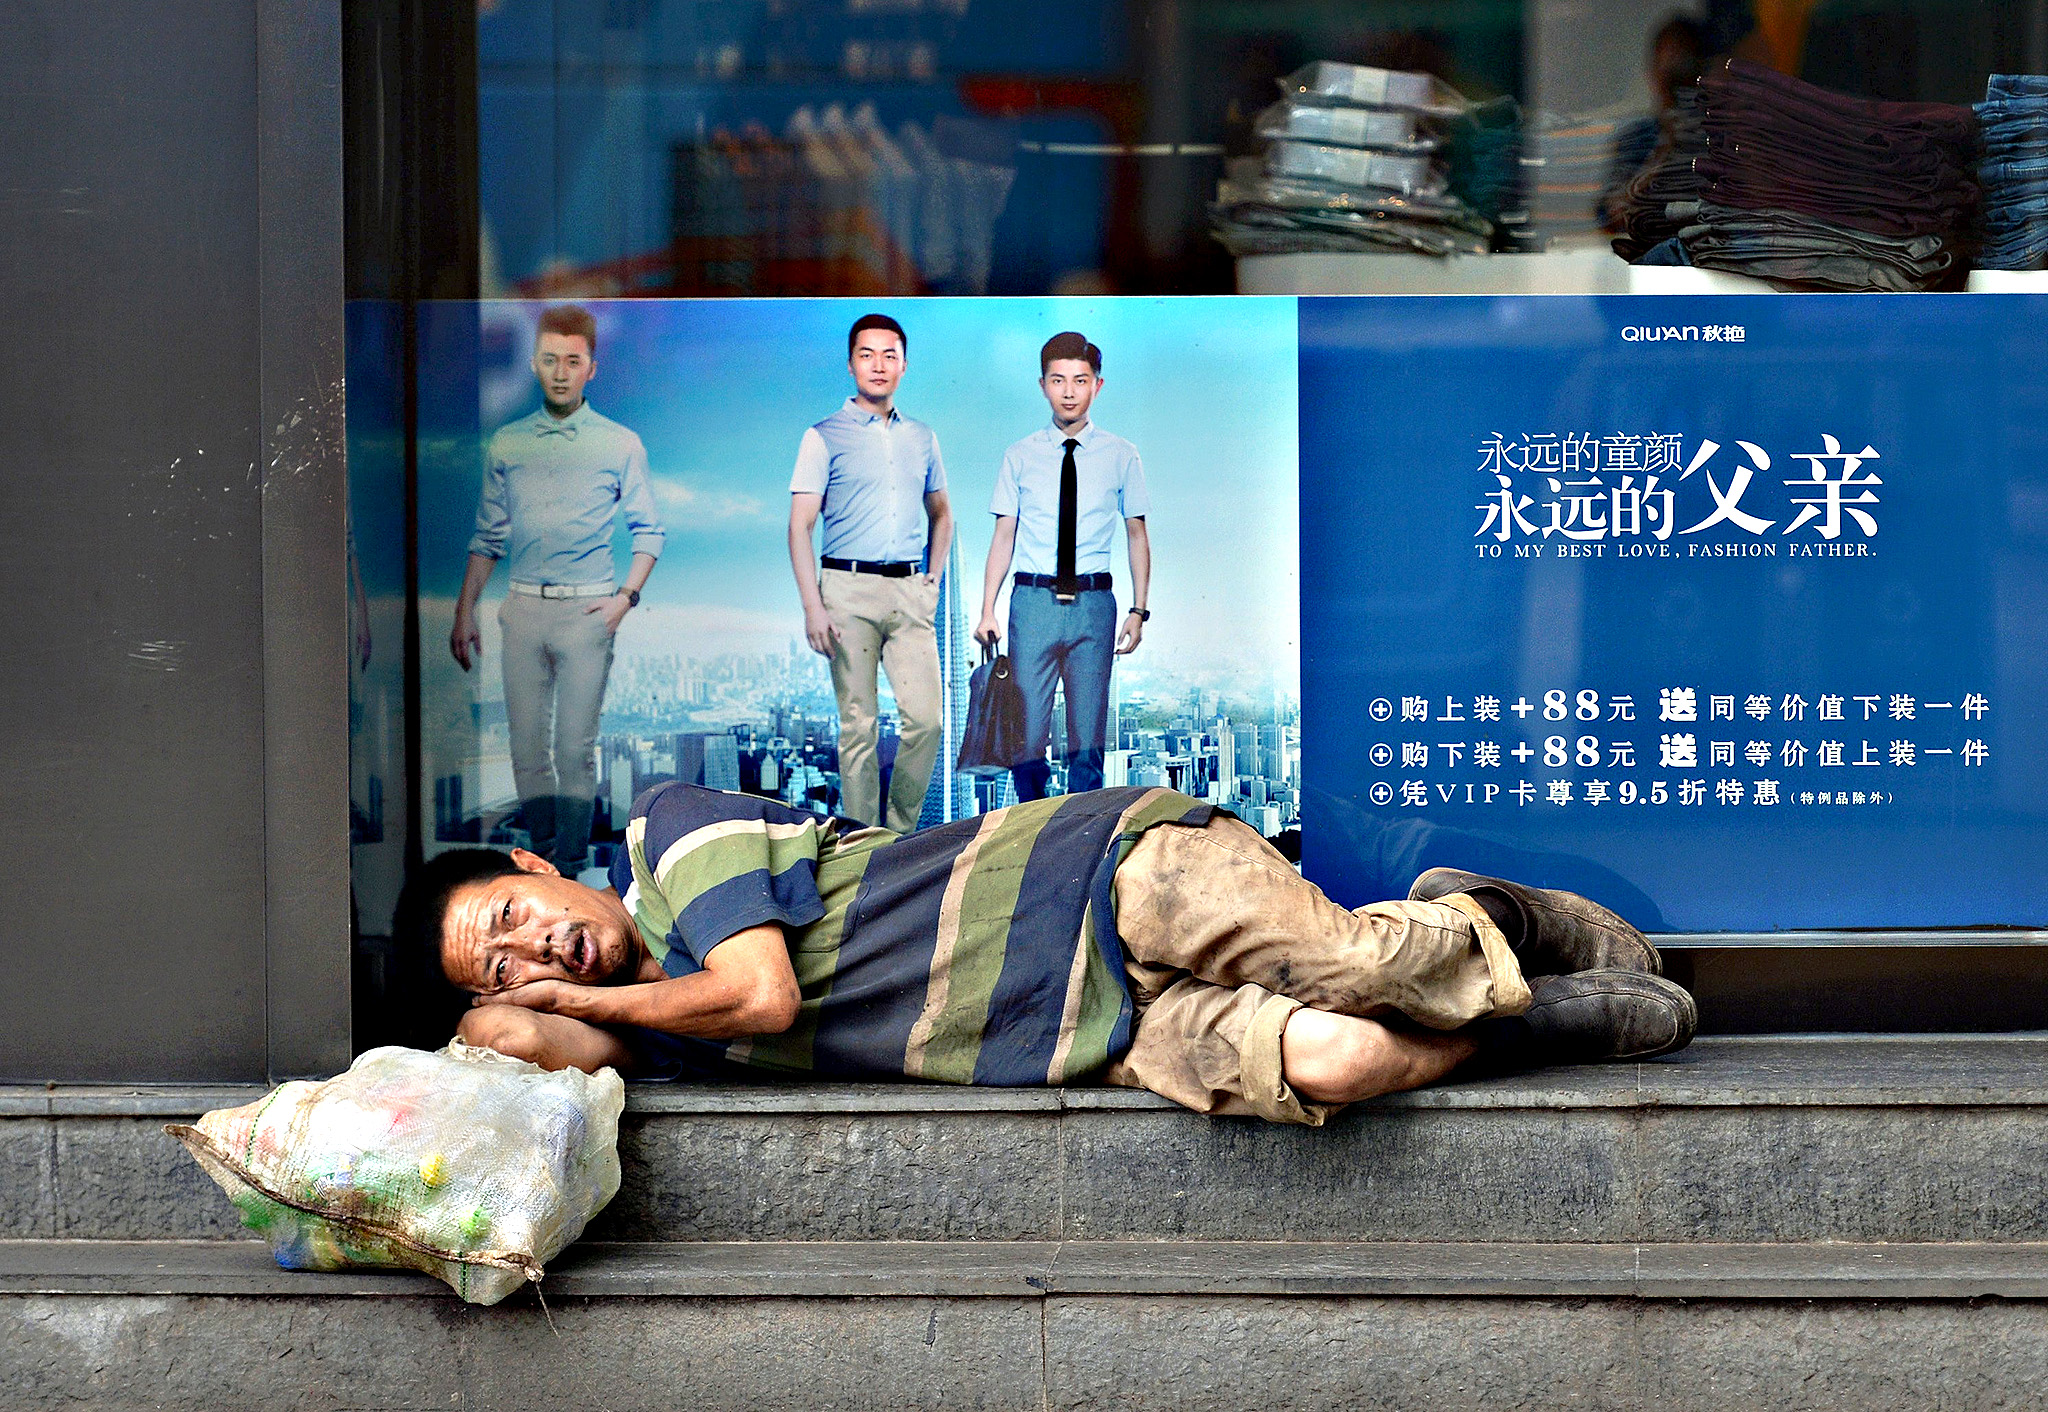 A garbage collector rests in front of a clothing store with an advertisement on the glass window in Hefei, Anhui province, China, June 9, 2015